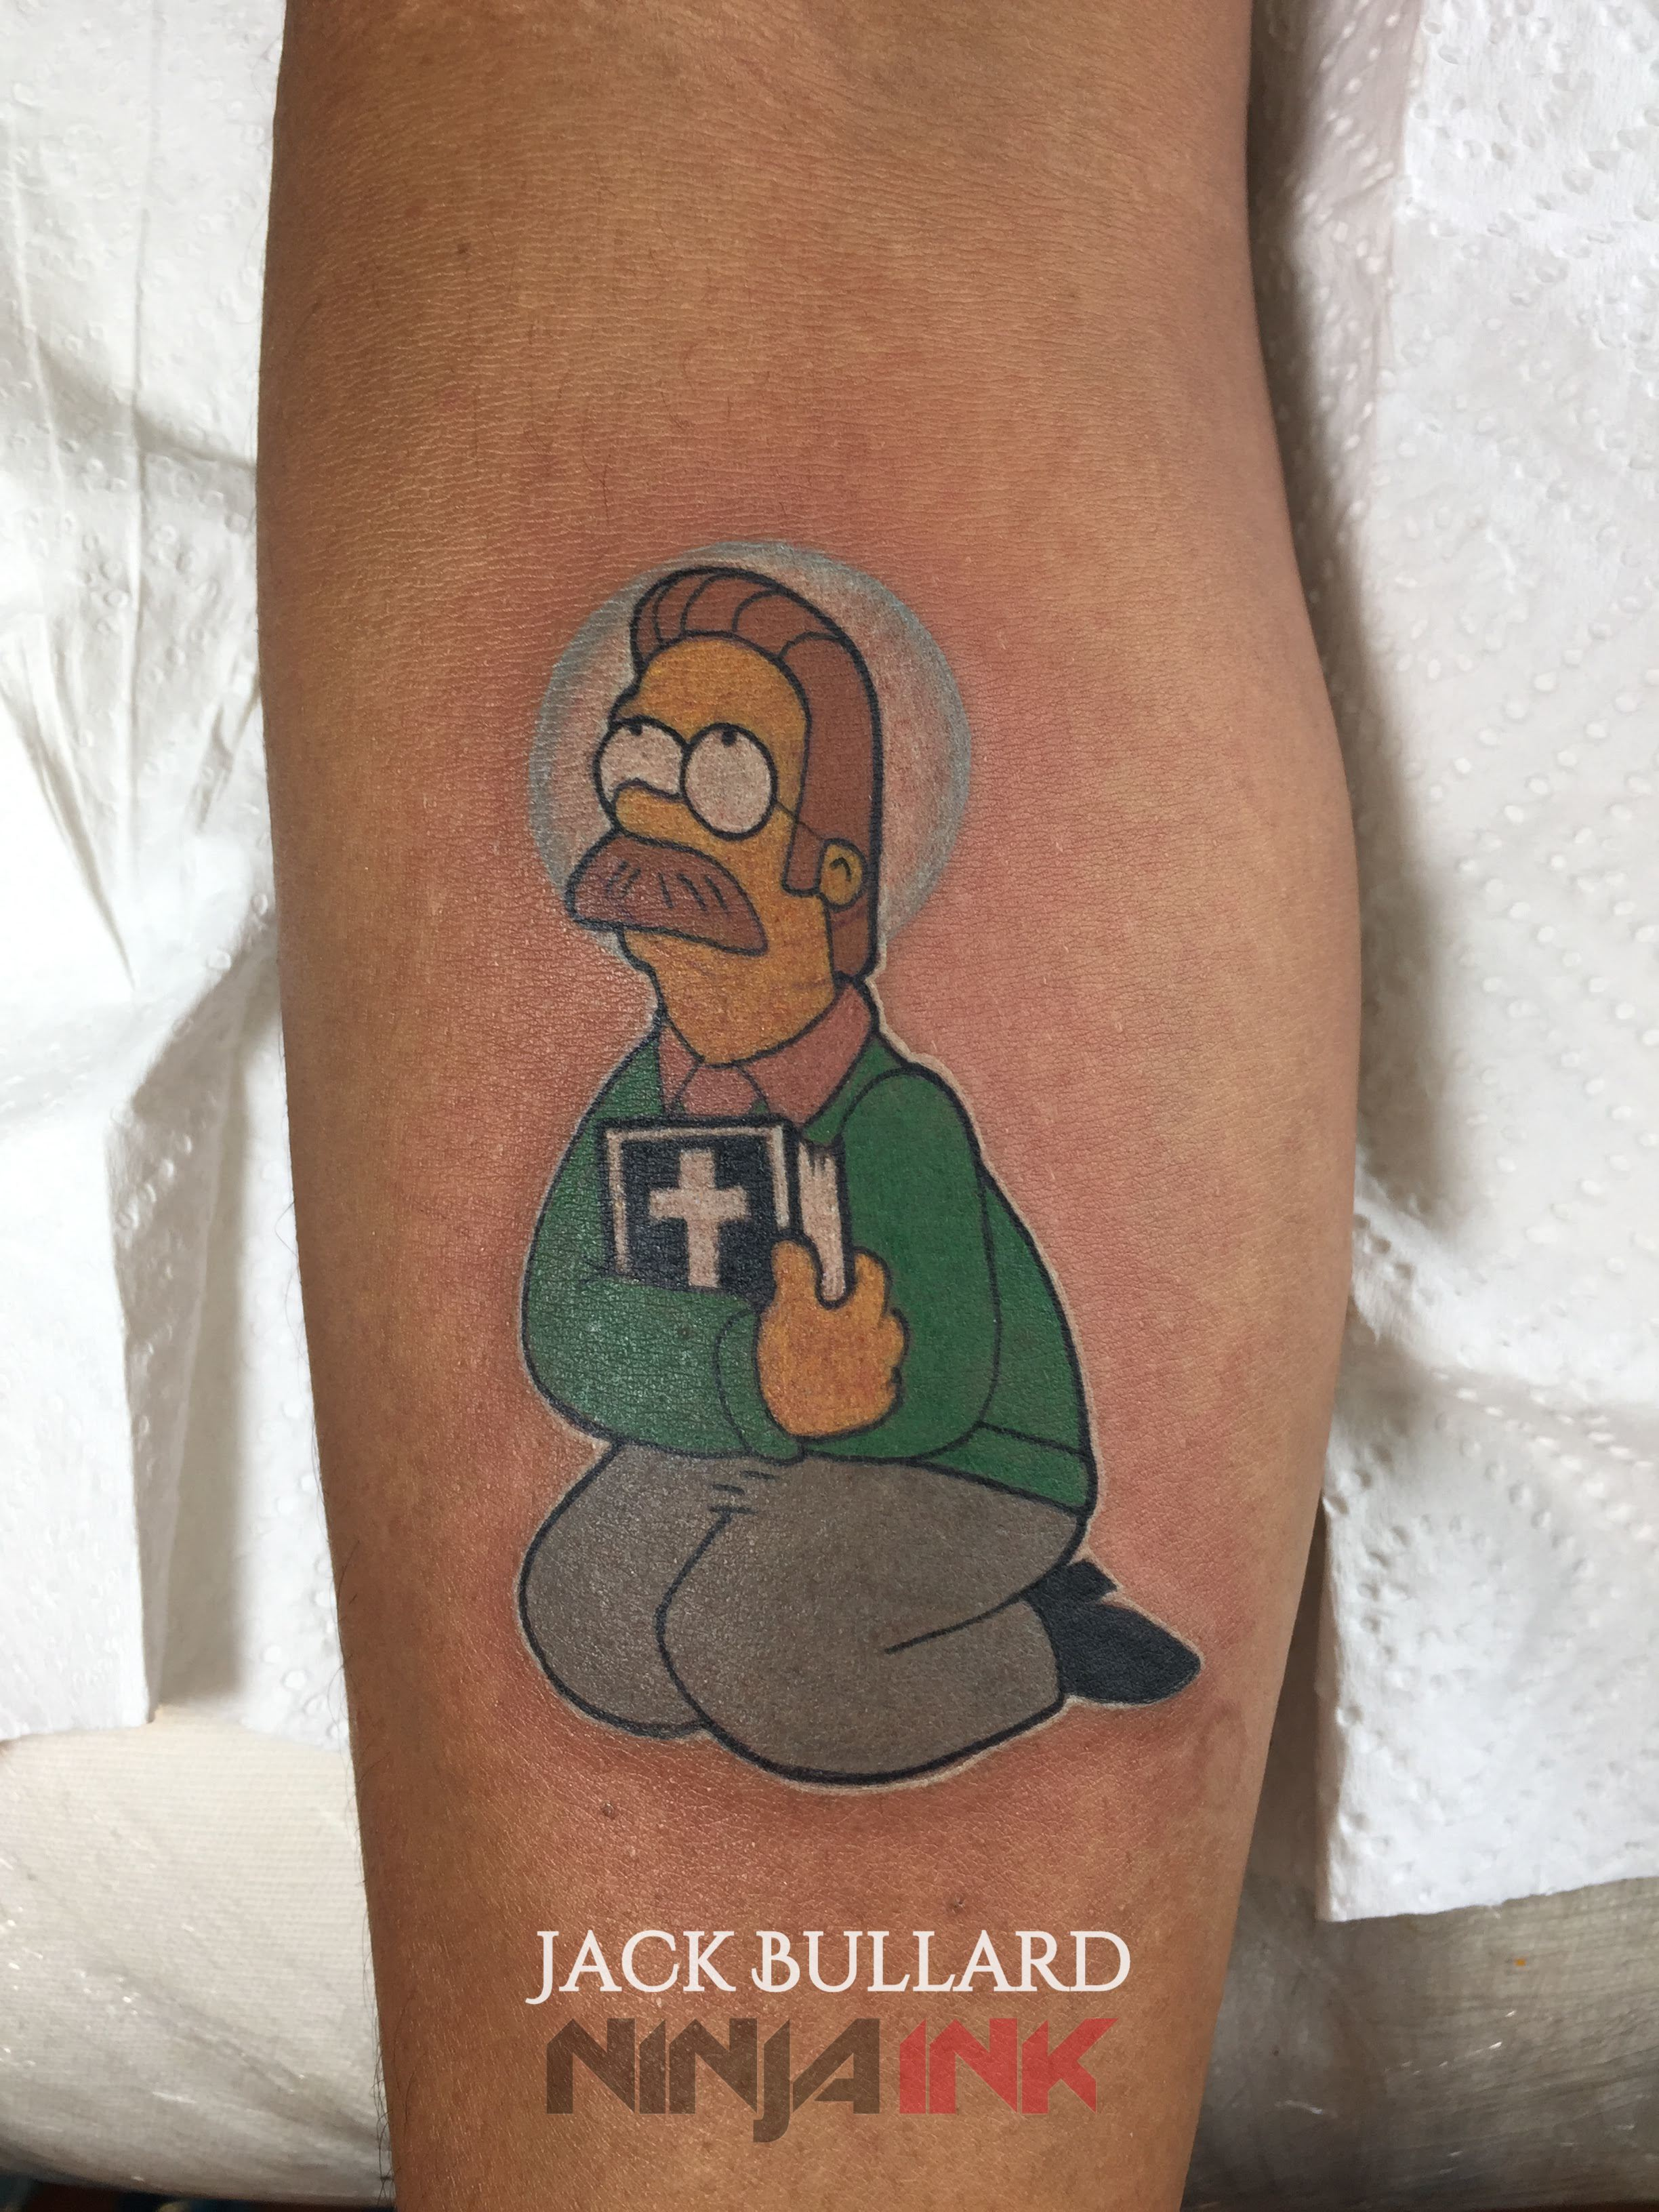 Ned Flanders will save us all